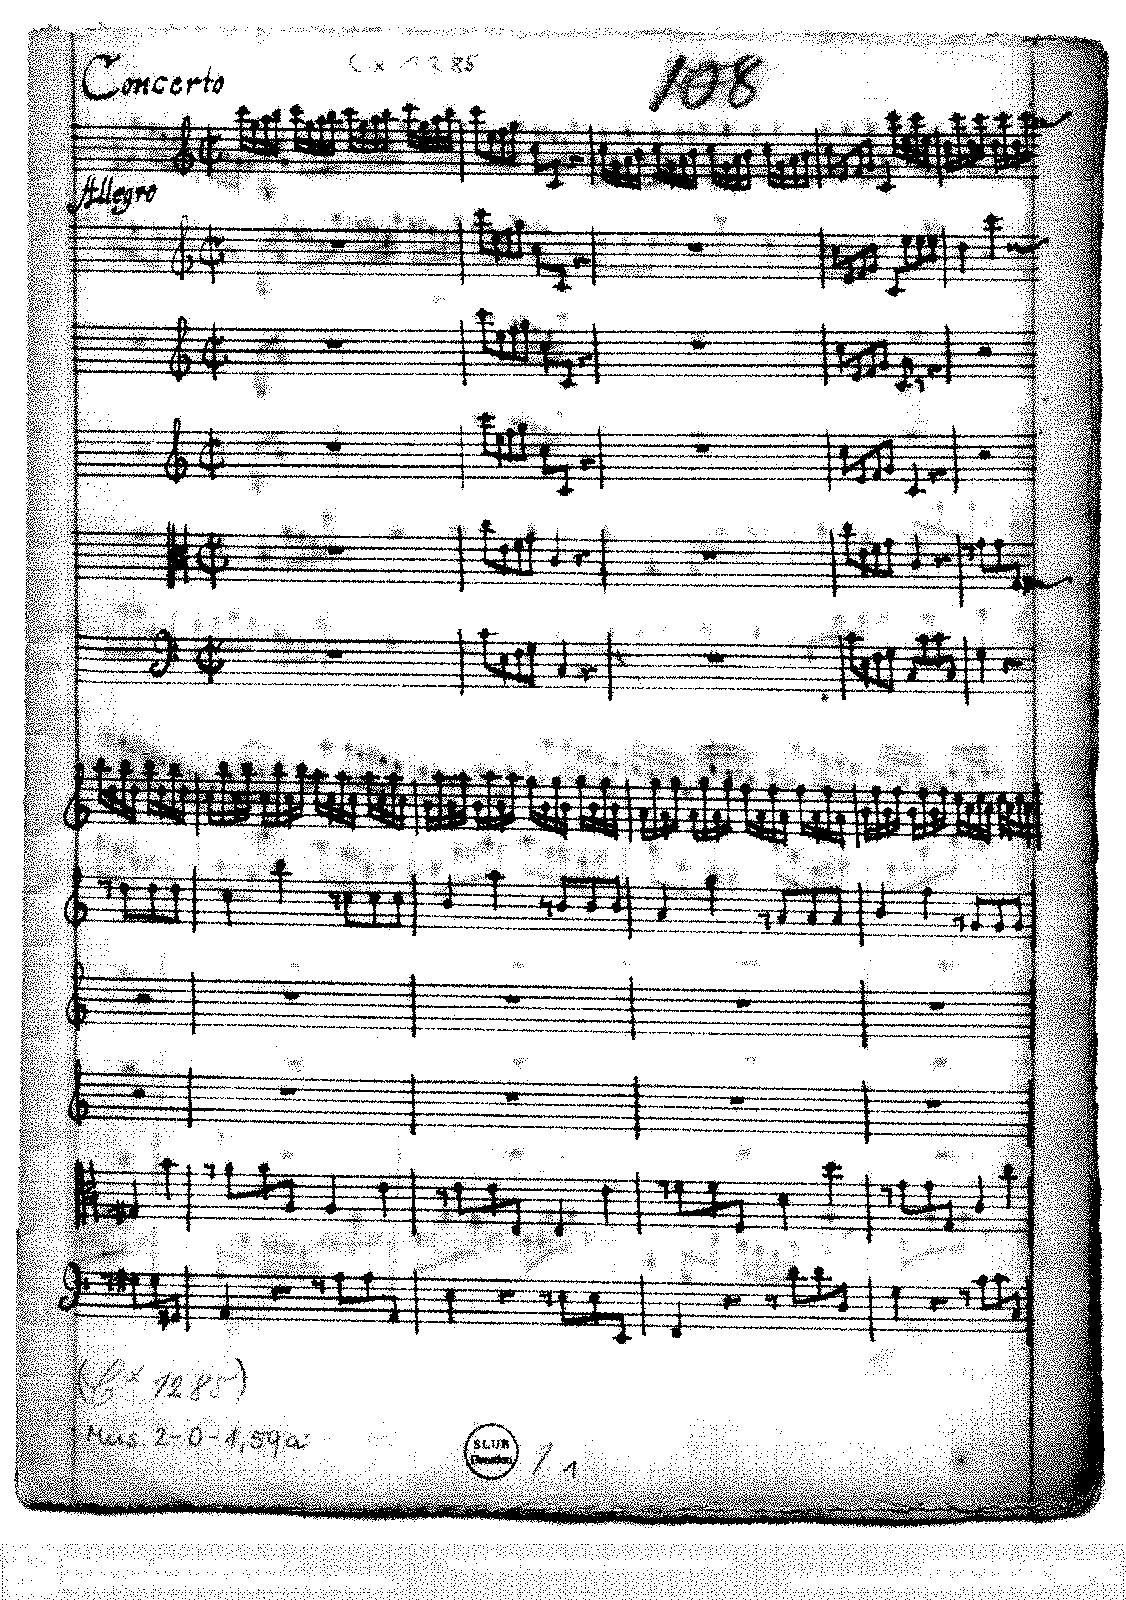 Concerto For 2 Violins In C Major Schrank II 33 102 Anonymous